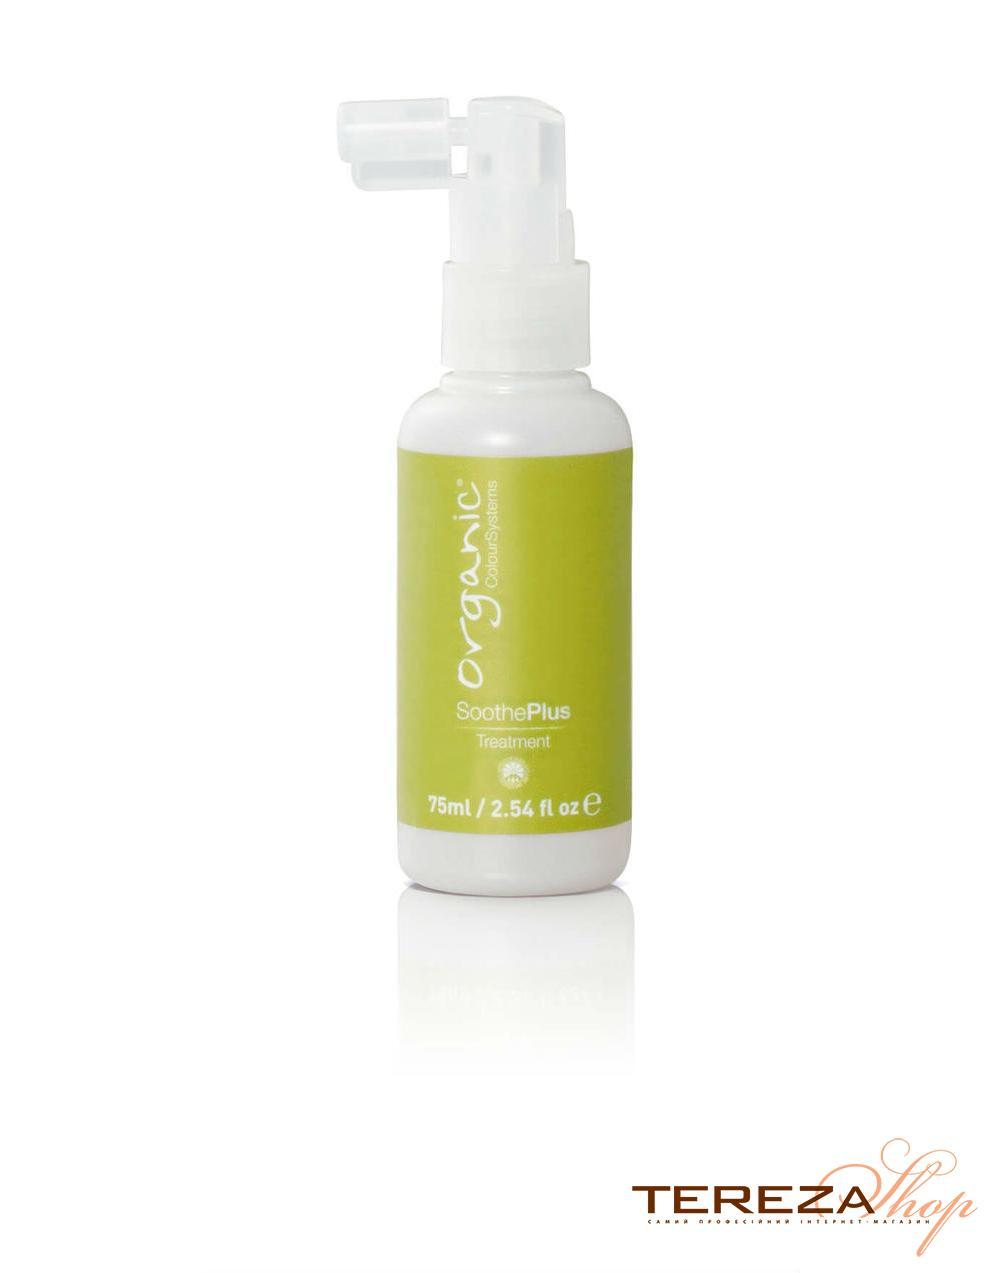 SOOTHE PLUS TREATMENT ORGANIC | Tereza Shop